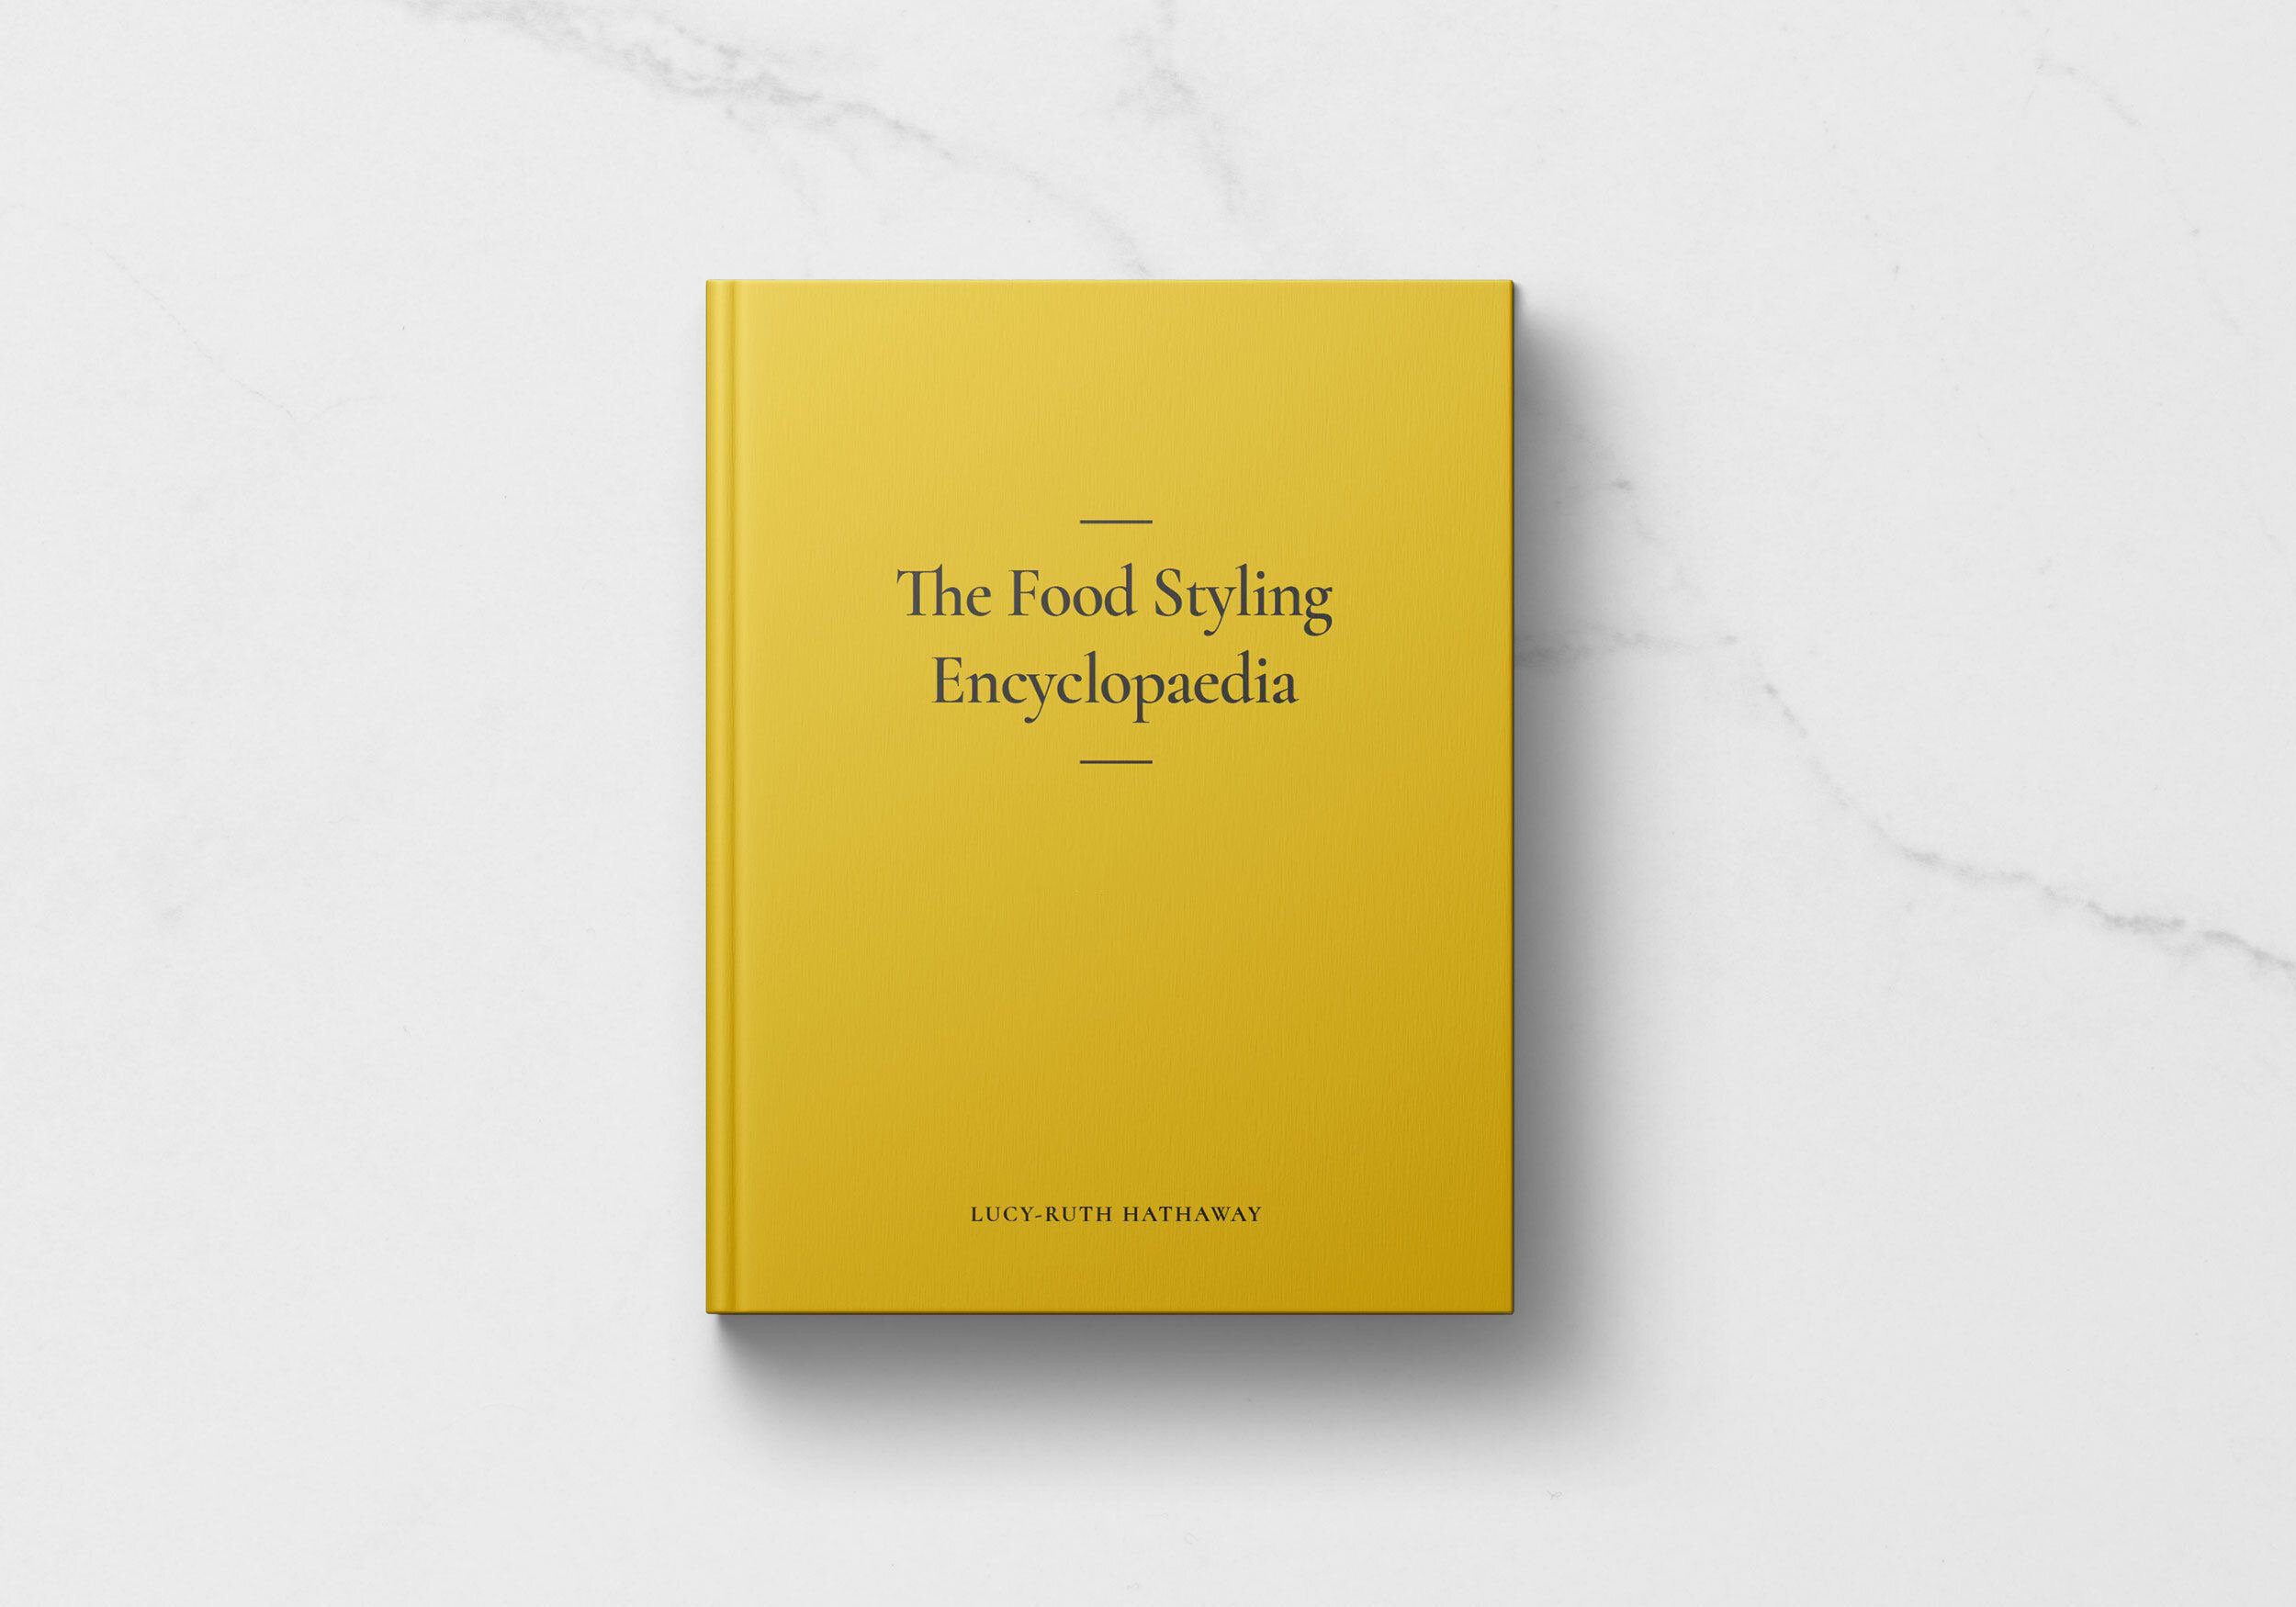 Lucy Ruth Hathaway The Food Styling Encyclopaedia, food photography art book, commercial food stylist, commercial food photography, food stylist tricks, food styling photography vocabulary, food artist, layers food styling